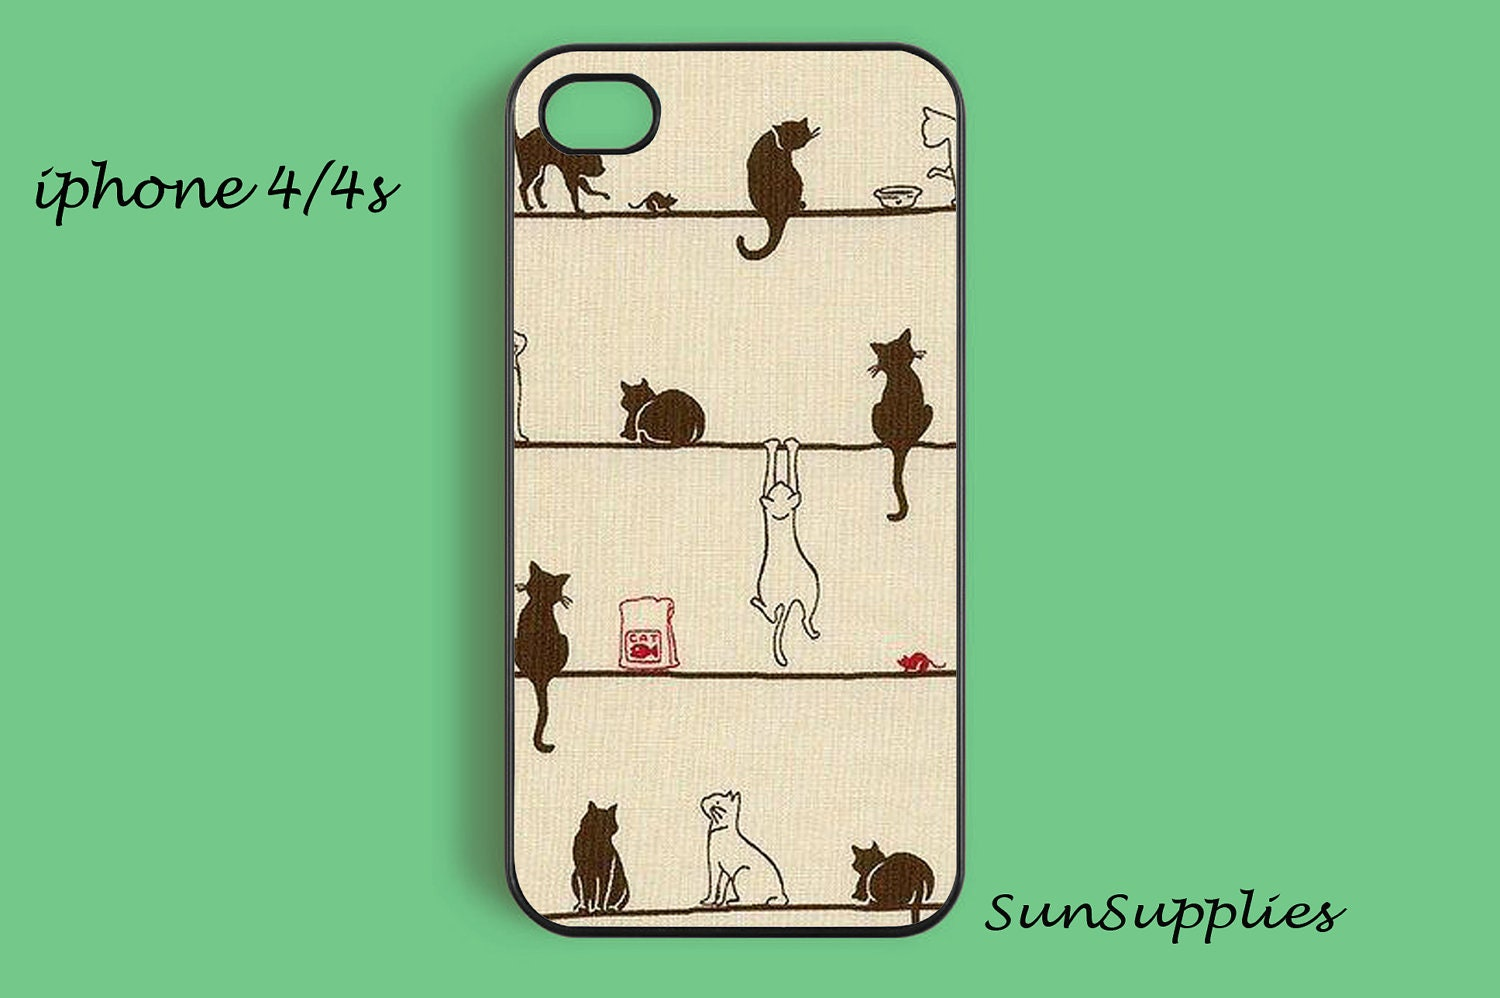 CAT iPhone 4 case iPhone 4s case iPhone cases iPhone 4 cover personalized hard plastic iPhone case - SunSupplies